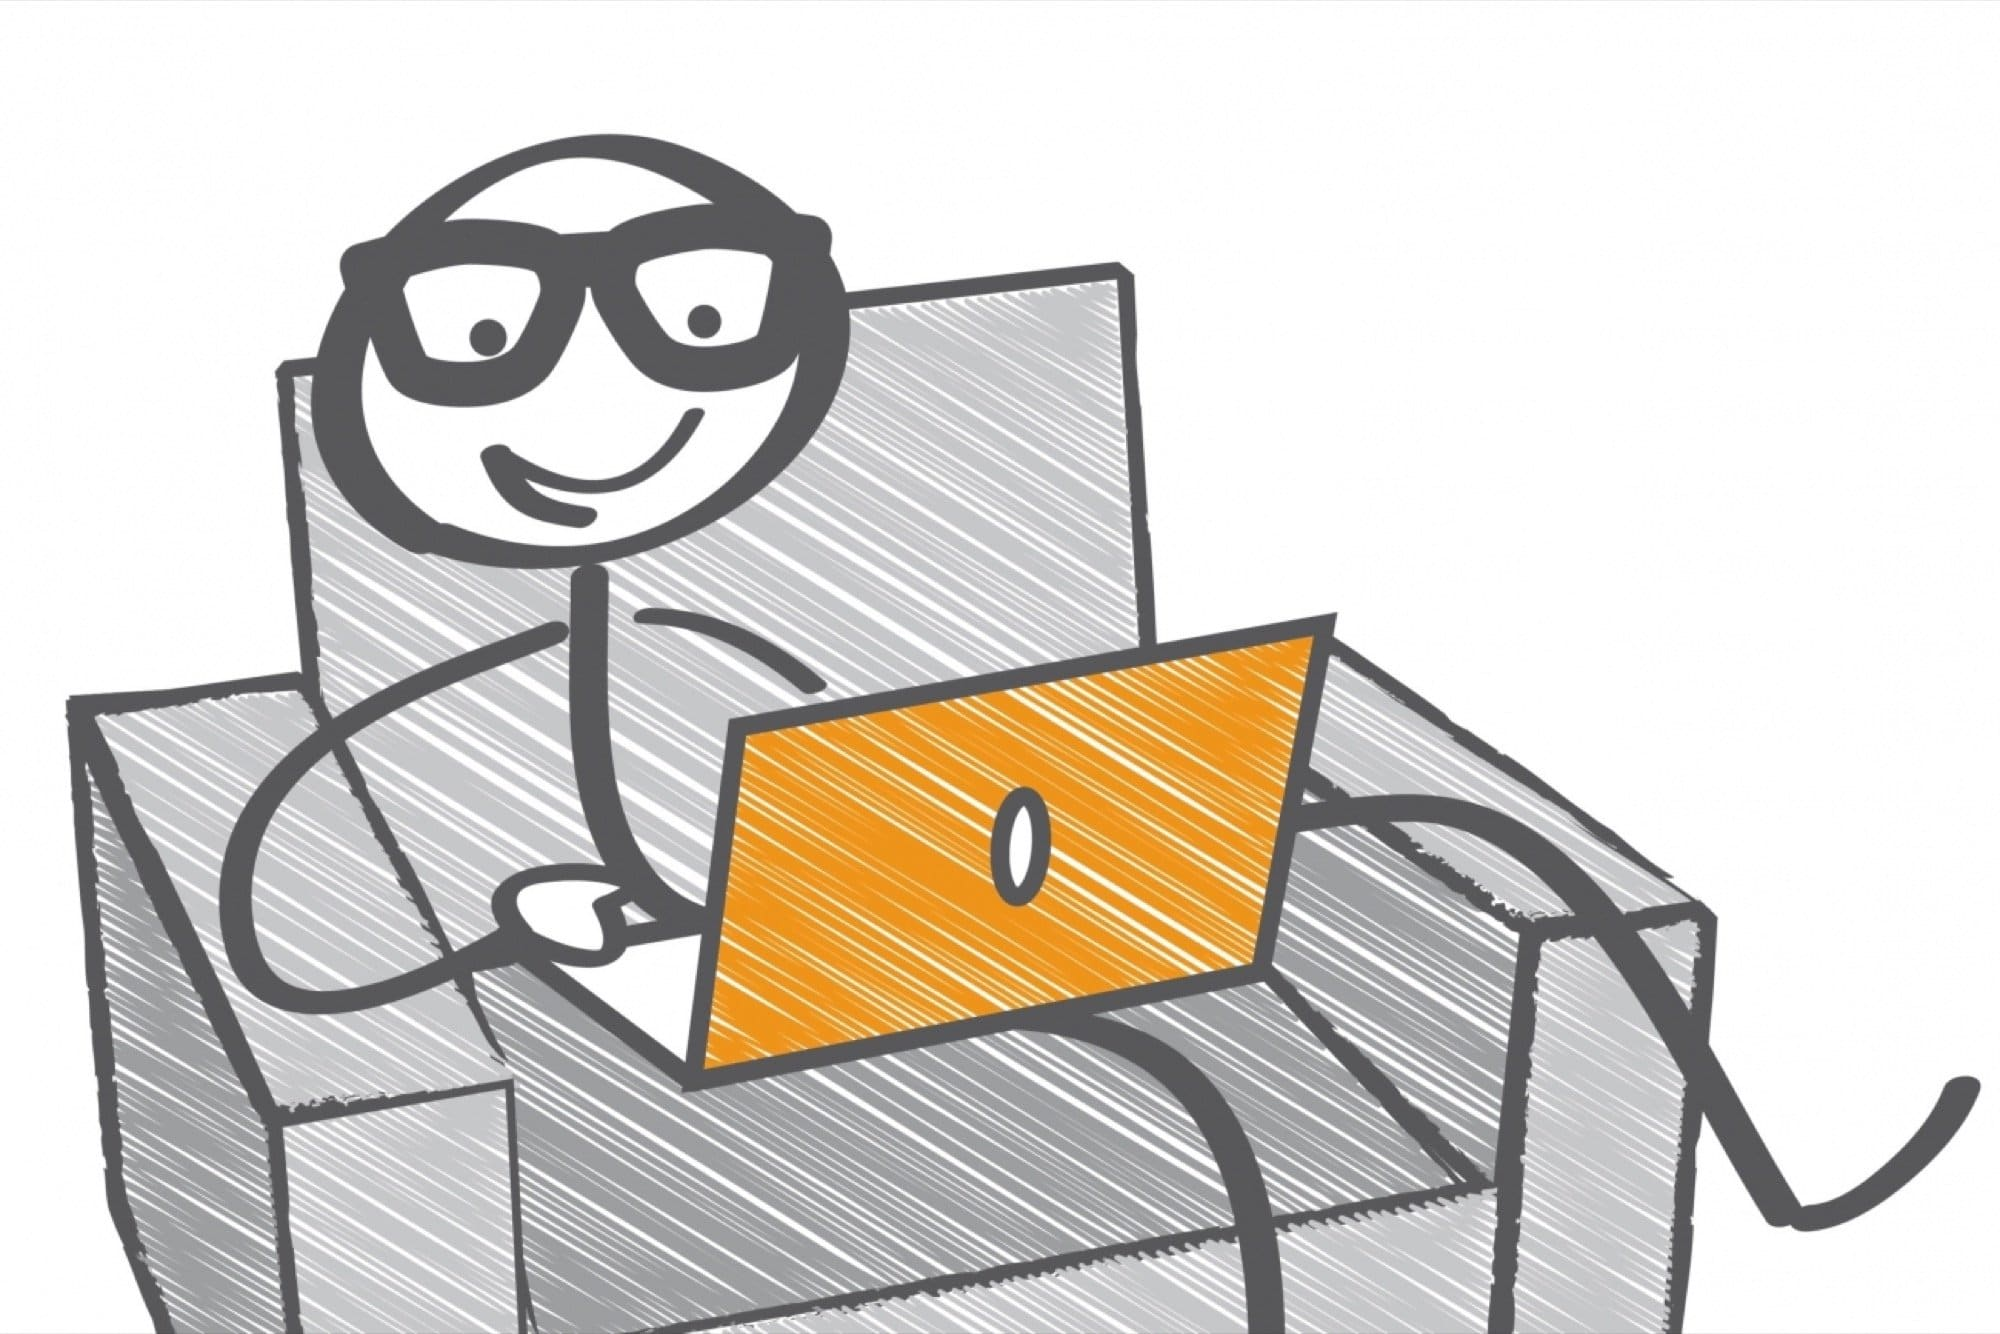 Flexi-time movement makes for happy employees